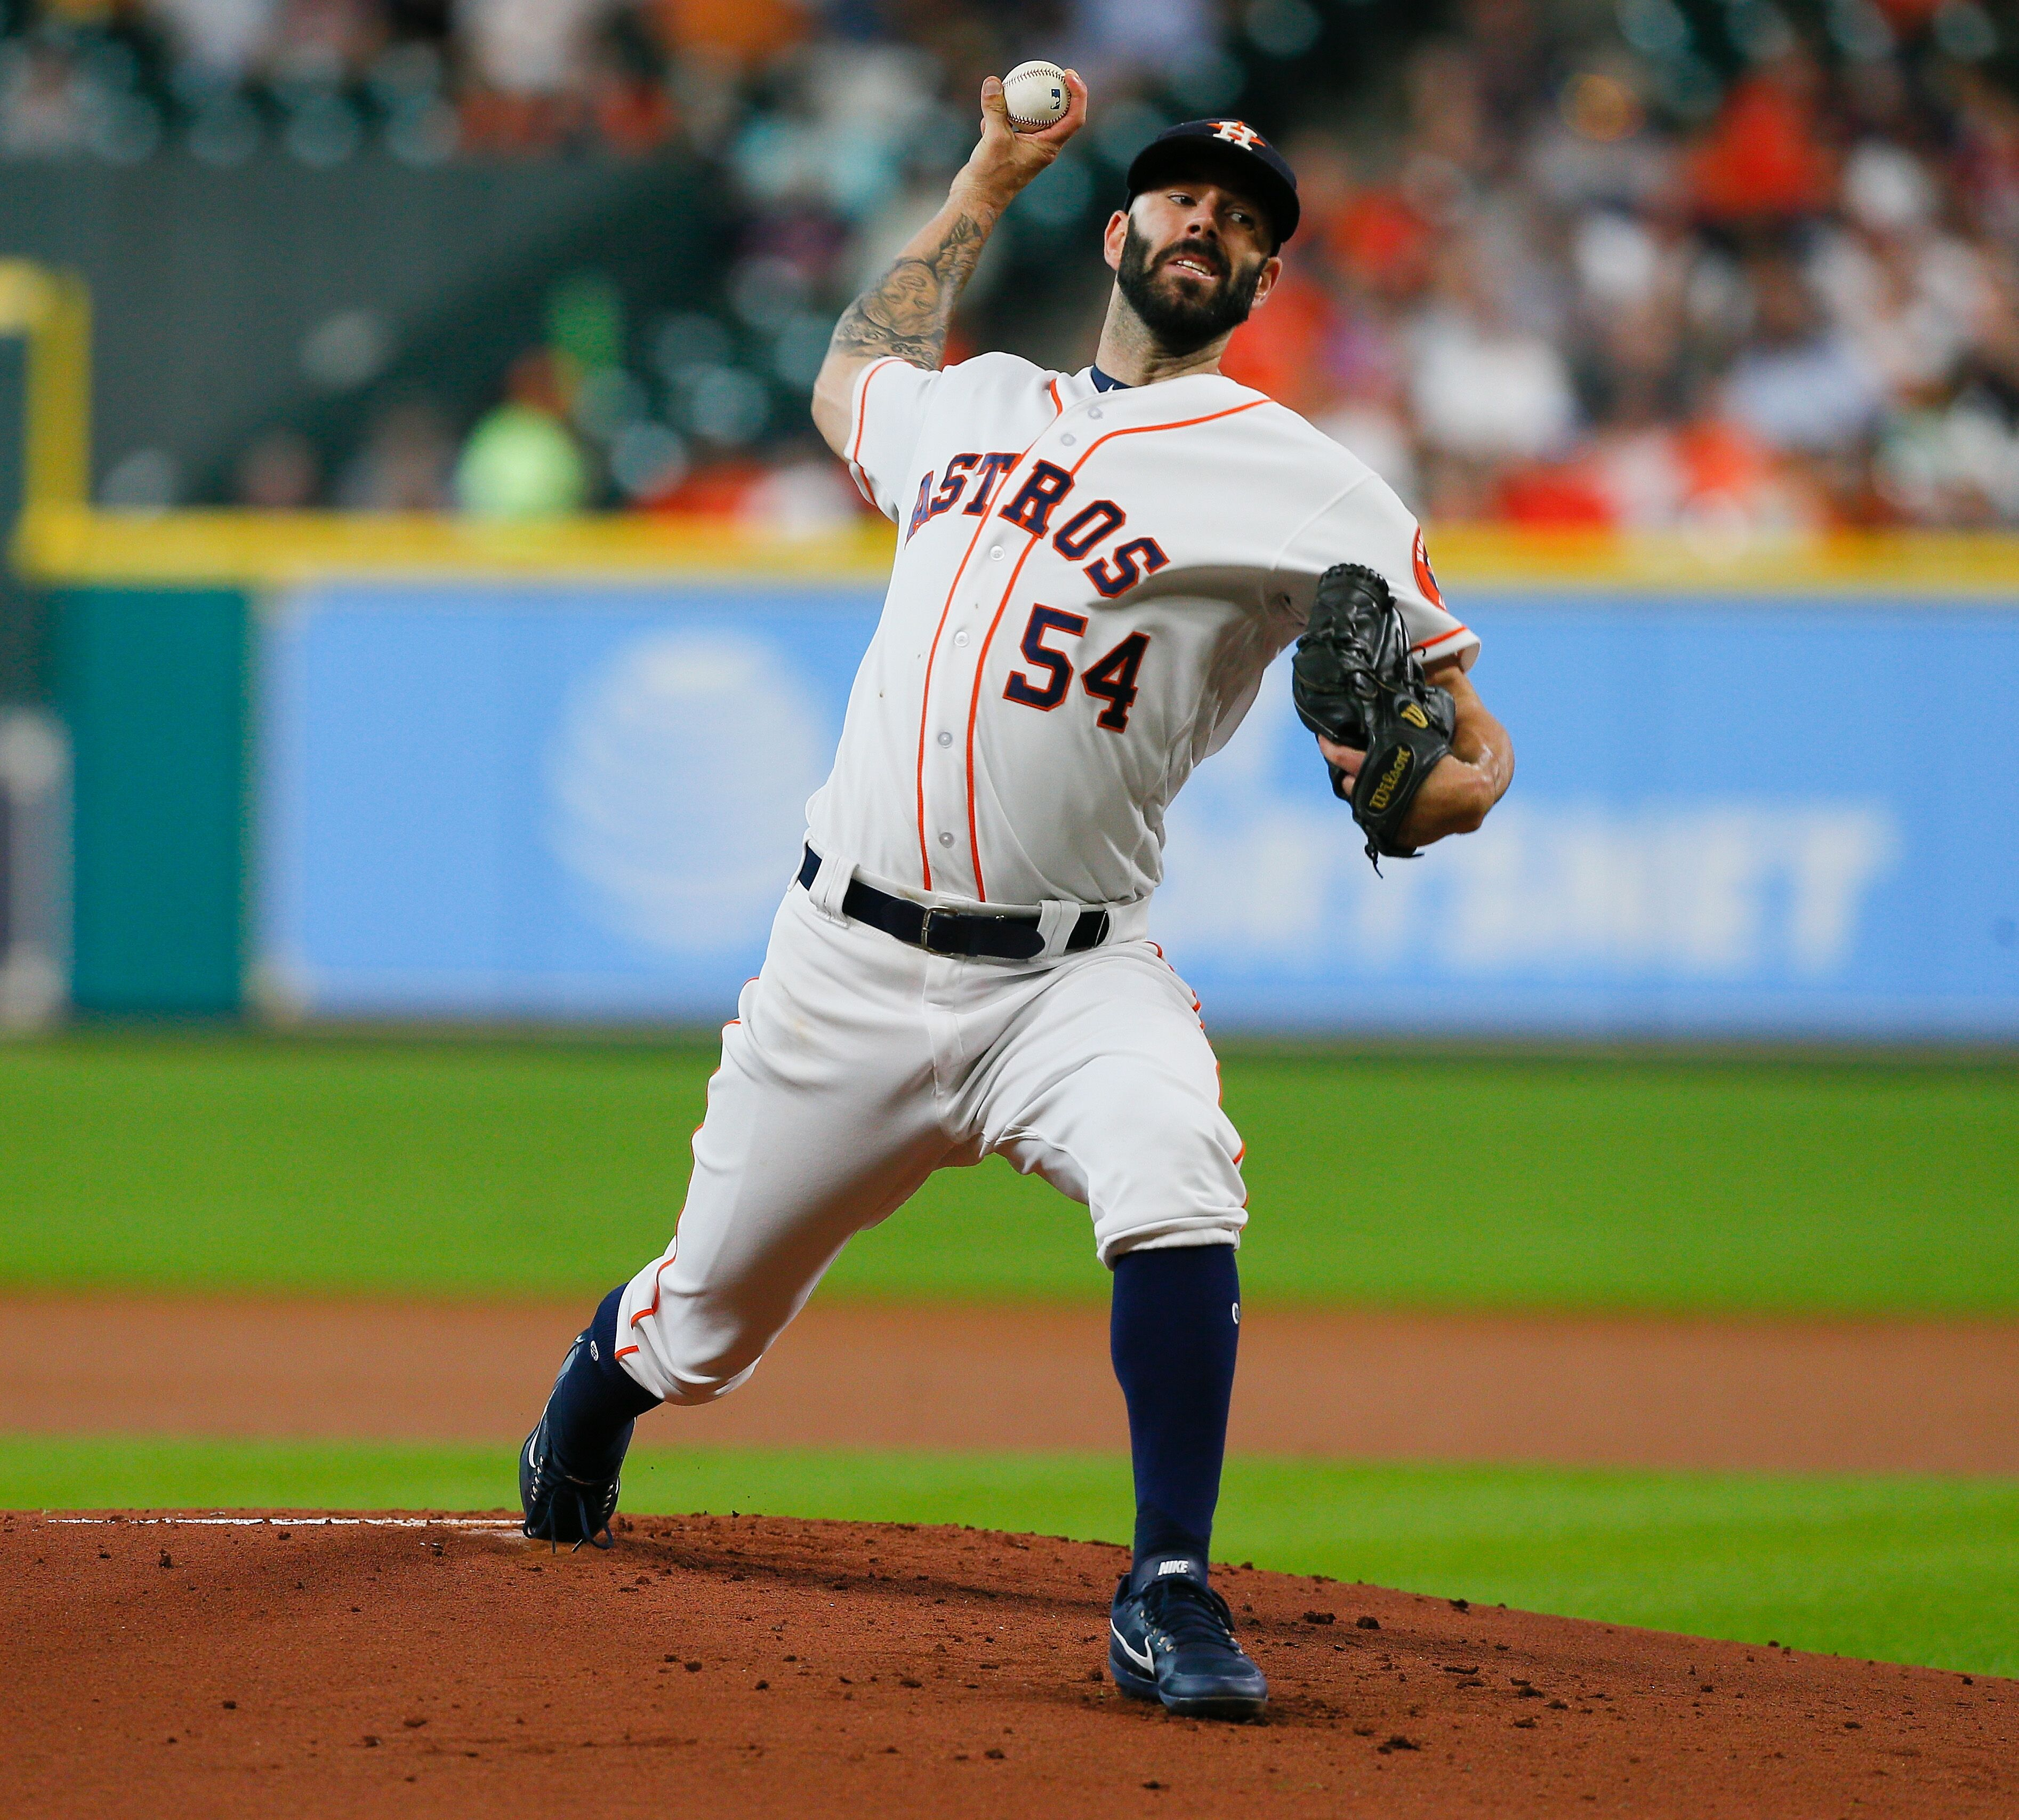 Houston Astros: Mike Fiers, Roster Expansion Helps Ease